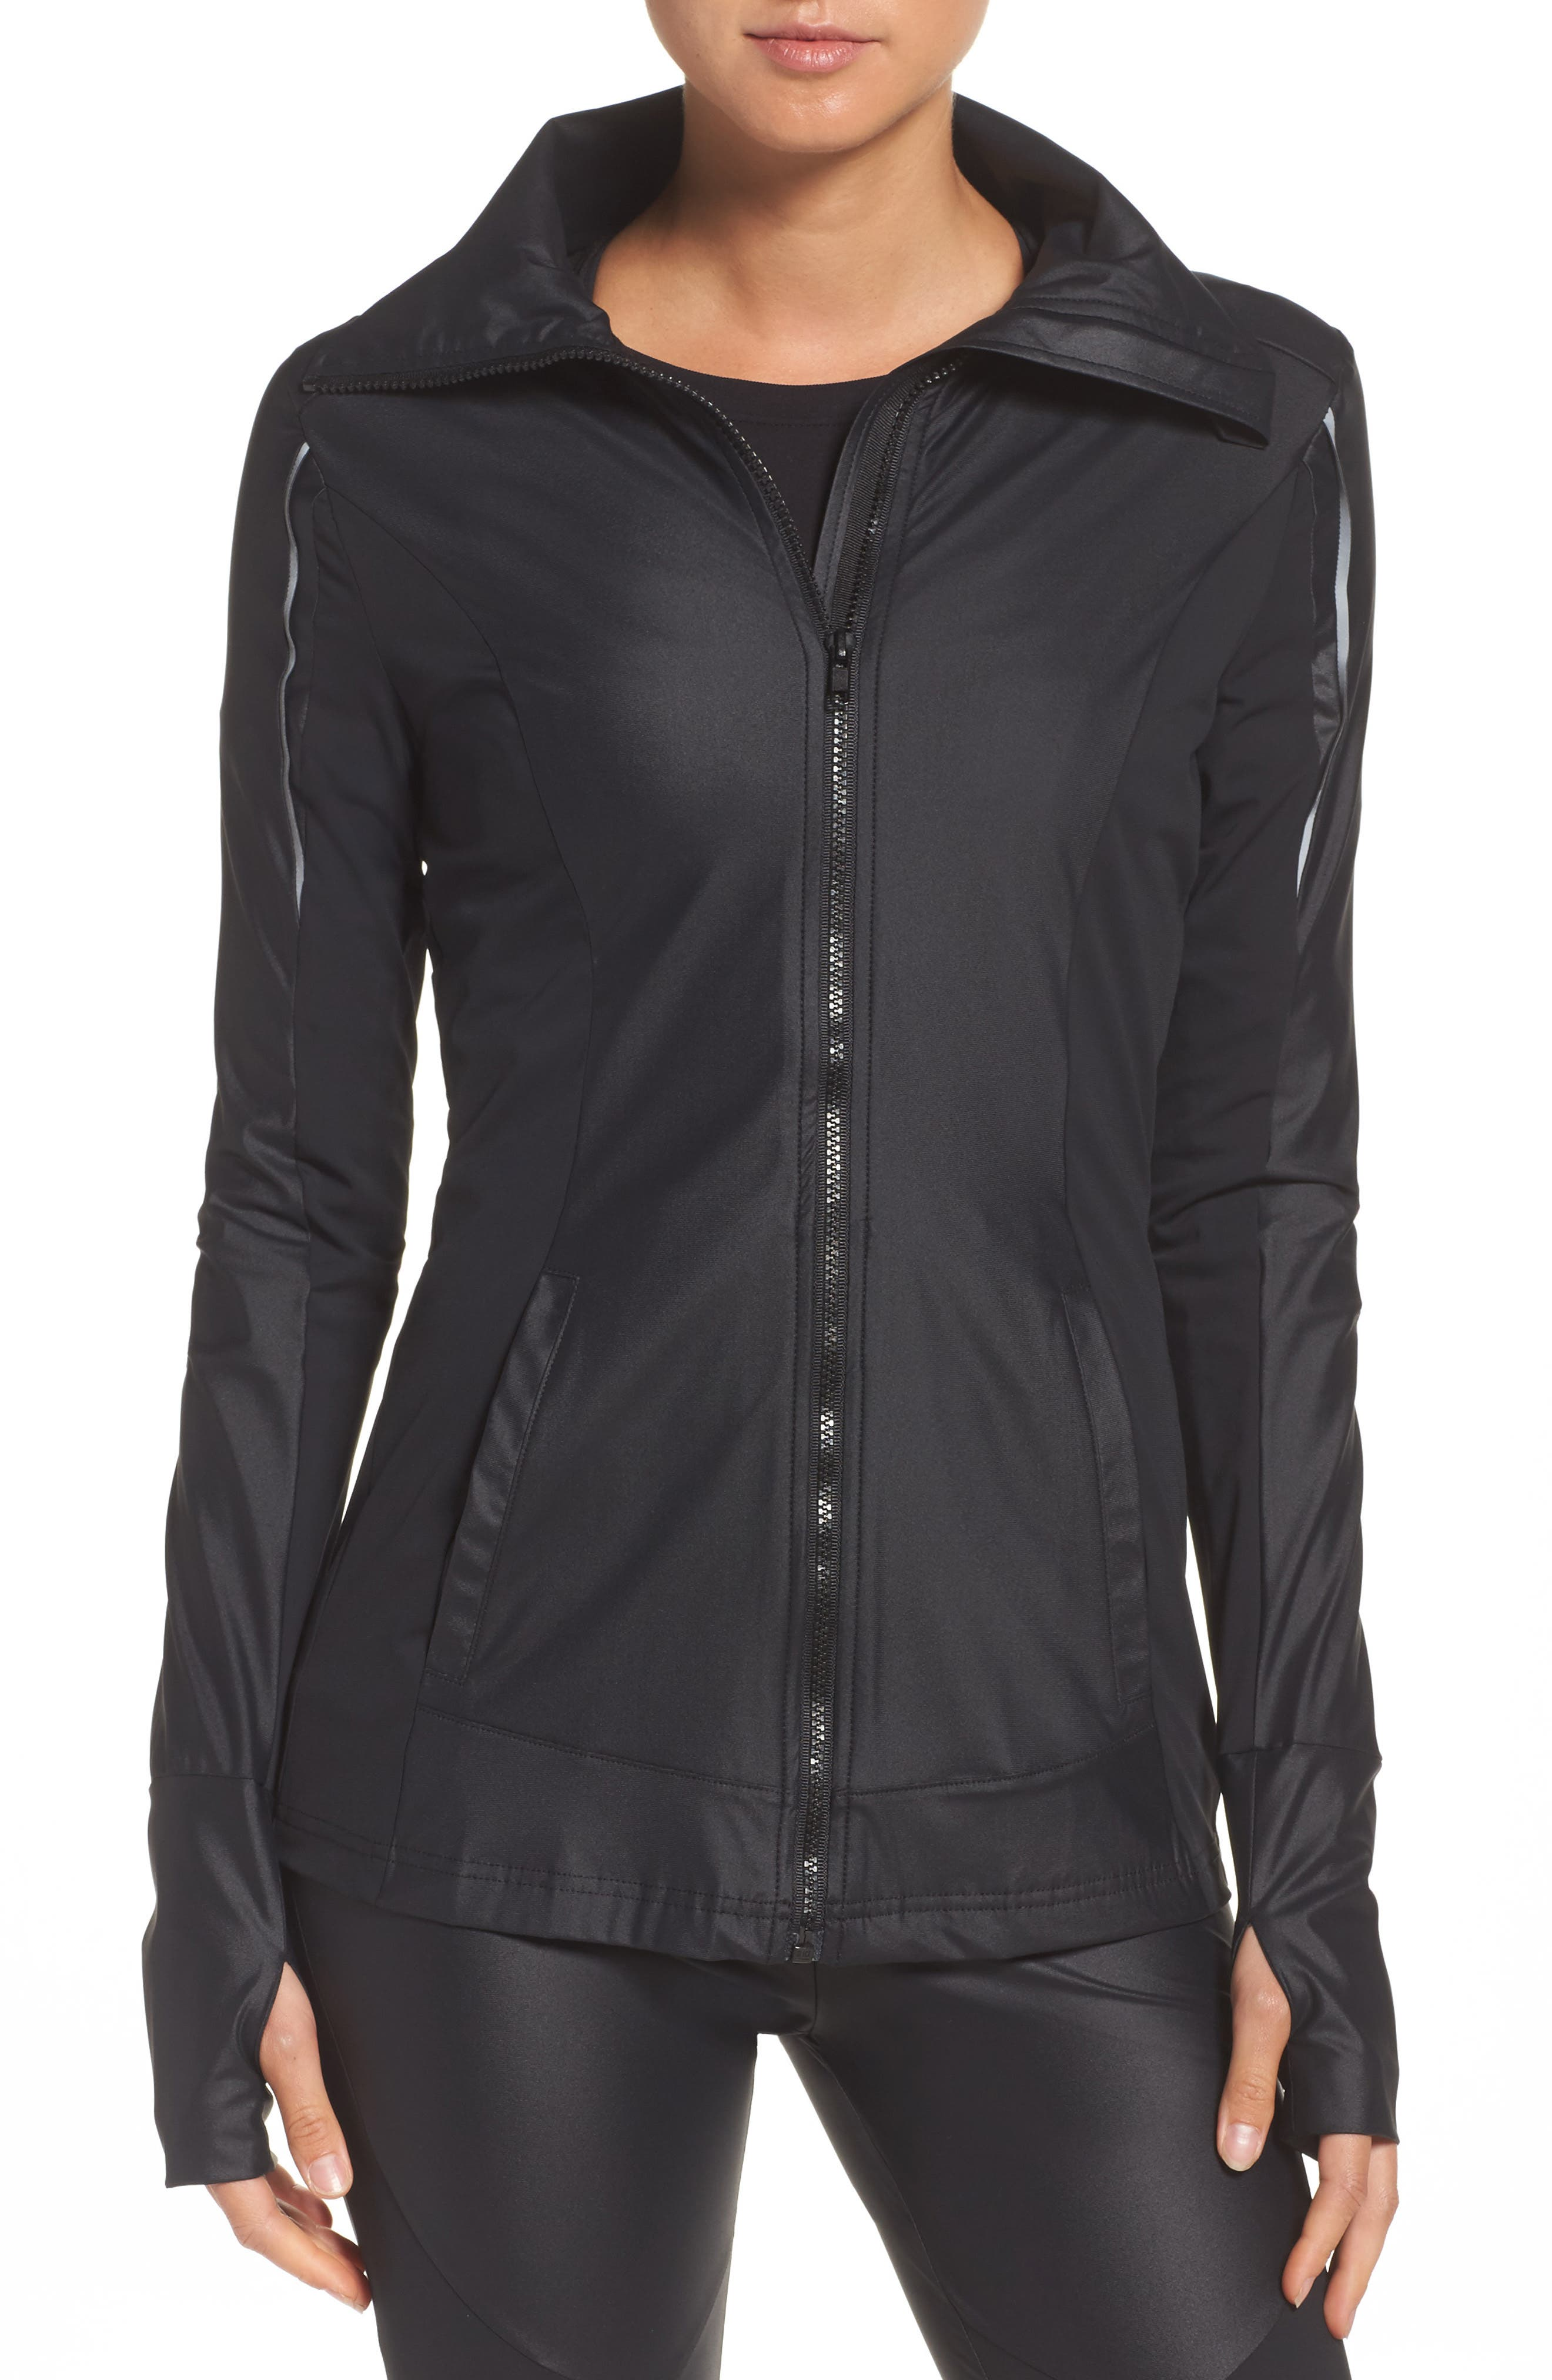 BoomBoom Athletica Lightweight Jacket,                         Main,                         color, 001